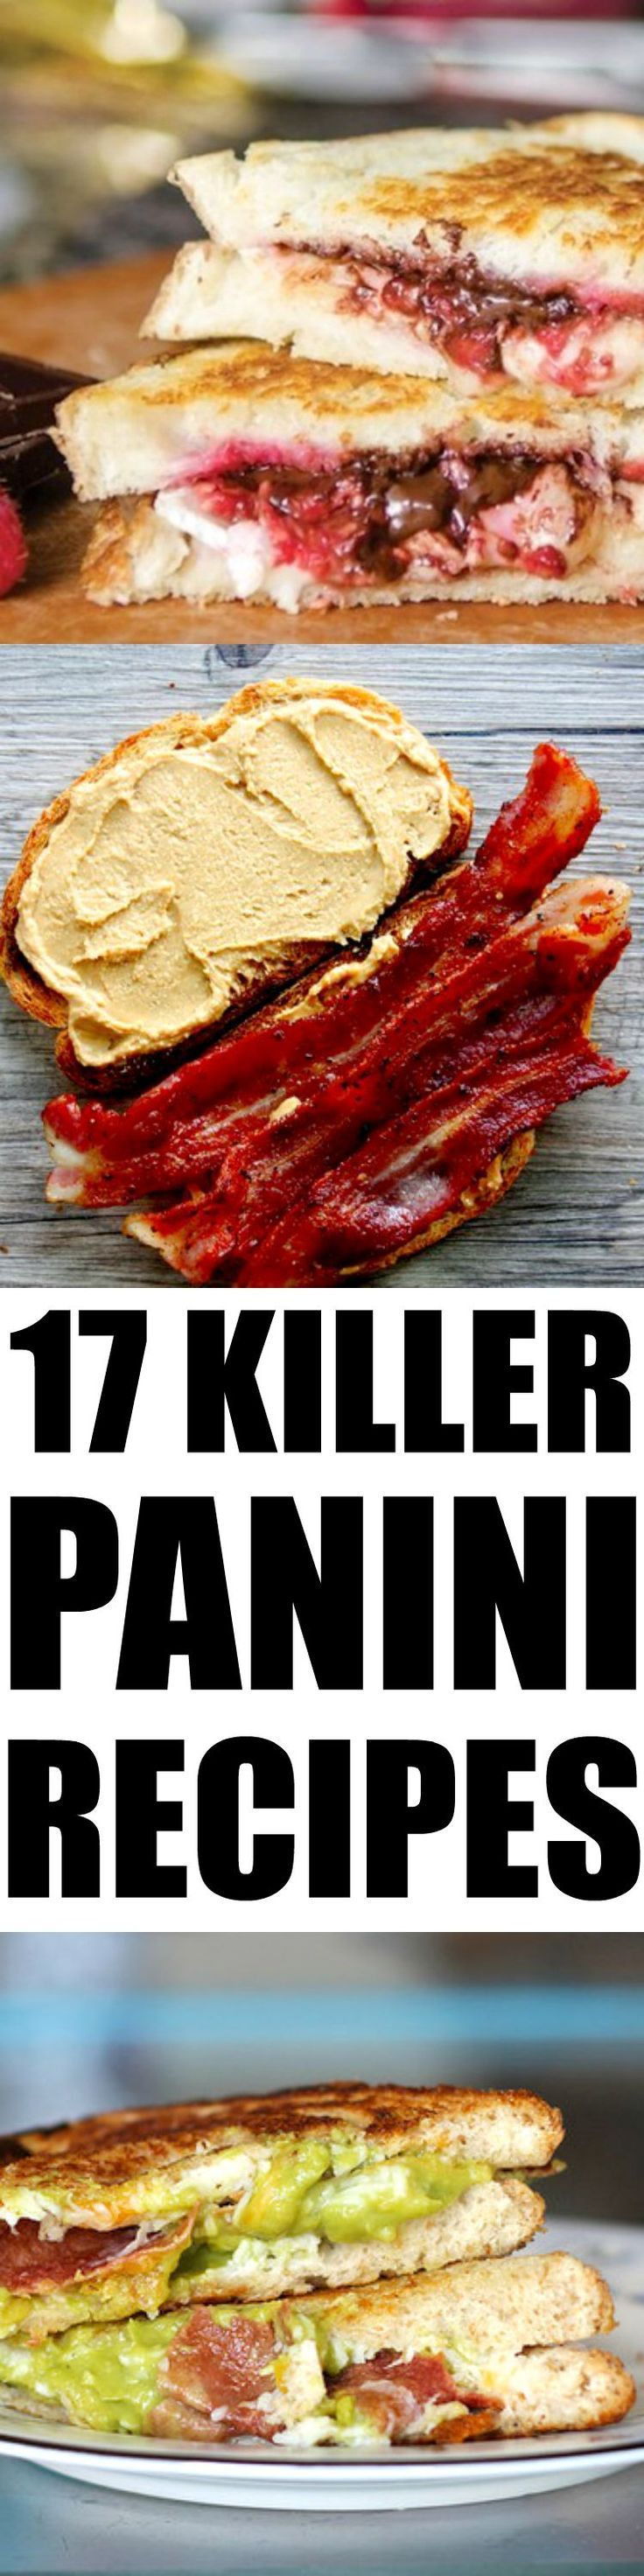 17 killer panini recipes #lunchideas #recipes #paninis